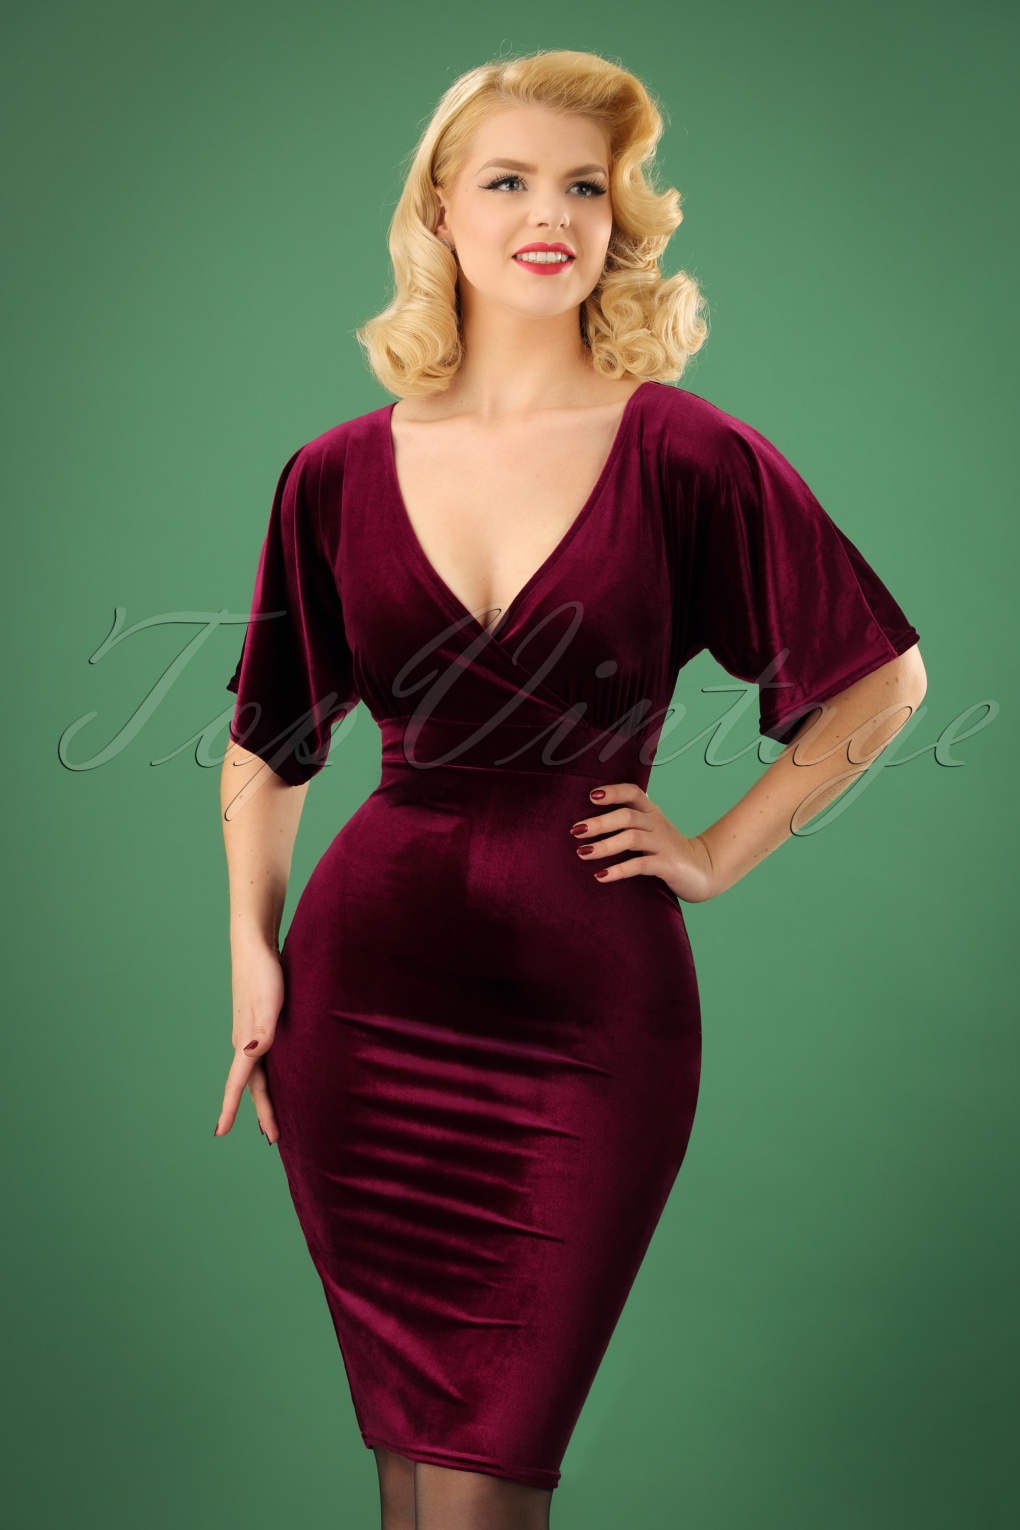 What Did Women Wear in the 1950s? 1950s Fashion Guide 50s Viva Velvet Cross Pencil Dress in Claret £47.84 AT vintagedancer.com